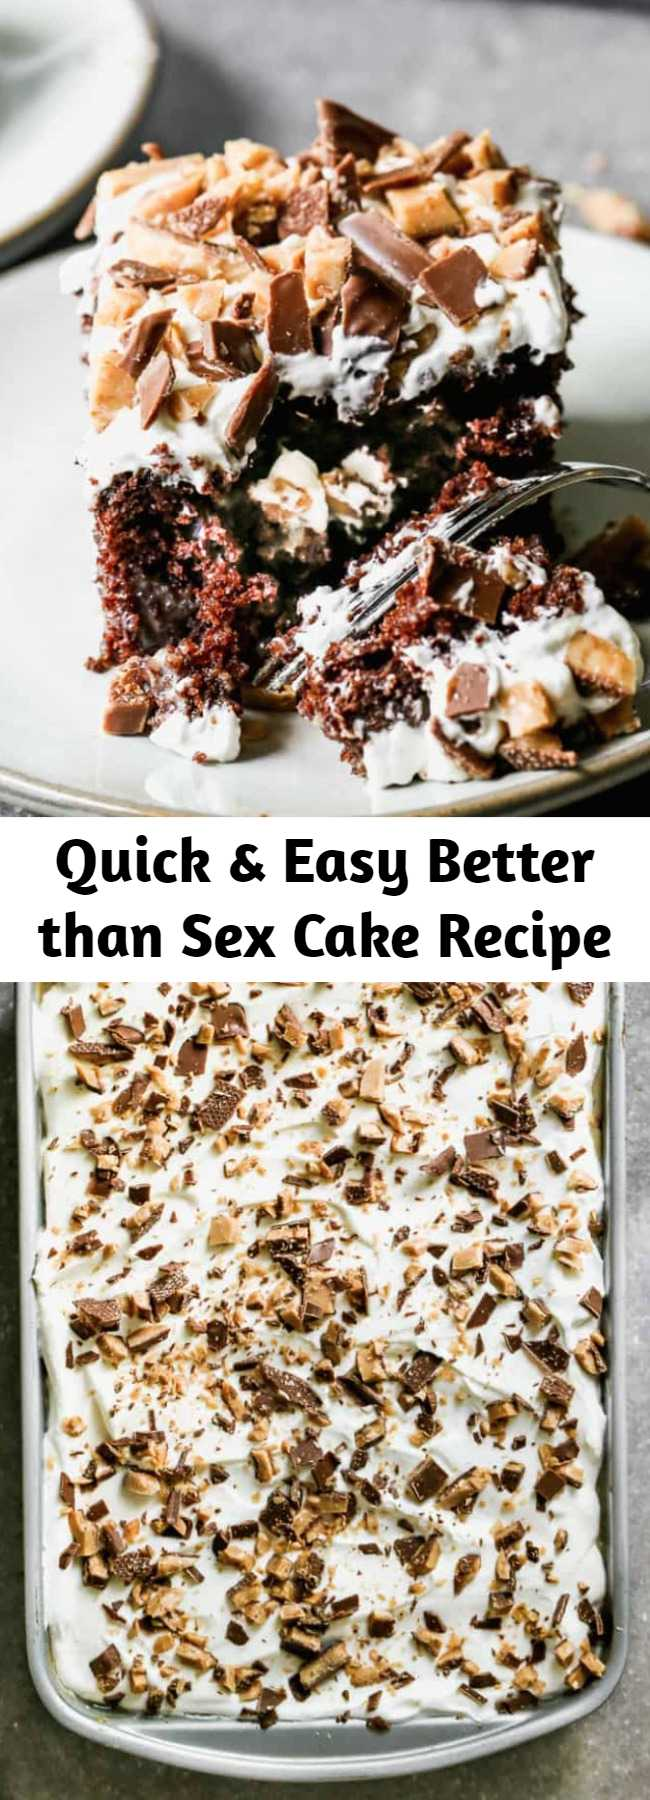 Quick & Easy Better than Sex Cake Recipe - Better than Sex Cake made with chocolate cake soaked in homemade caramel sauce and topped with fresh whipped cream. Whether or not you think it lives up to it's name, it's always a crowd favorite!